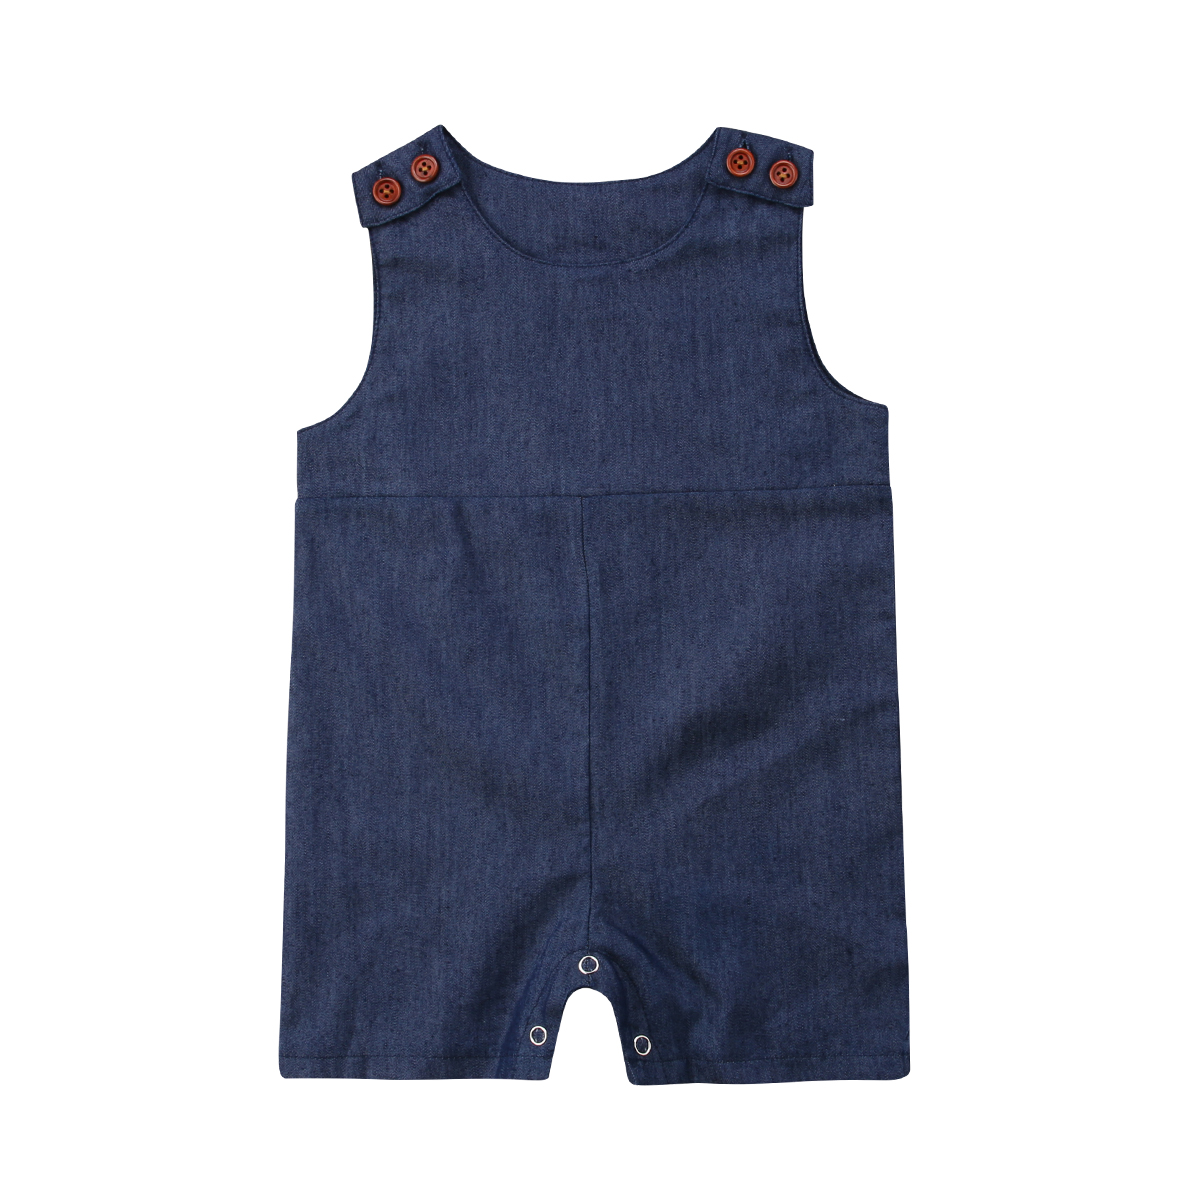 2019 Summer Newborn Toddler Baby Girl Boy Denim Jumpsuit   Rompers   Causal Sleeveless Short Playsuit Infant Baby Clothing Unisex